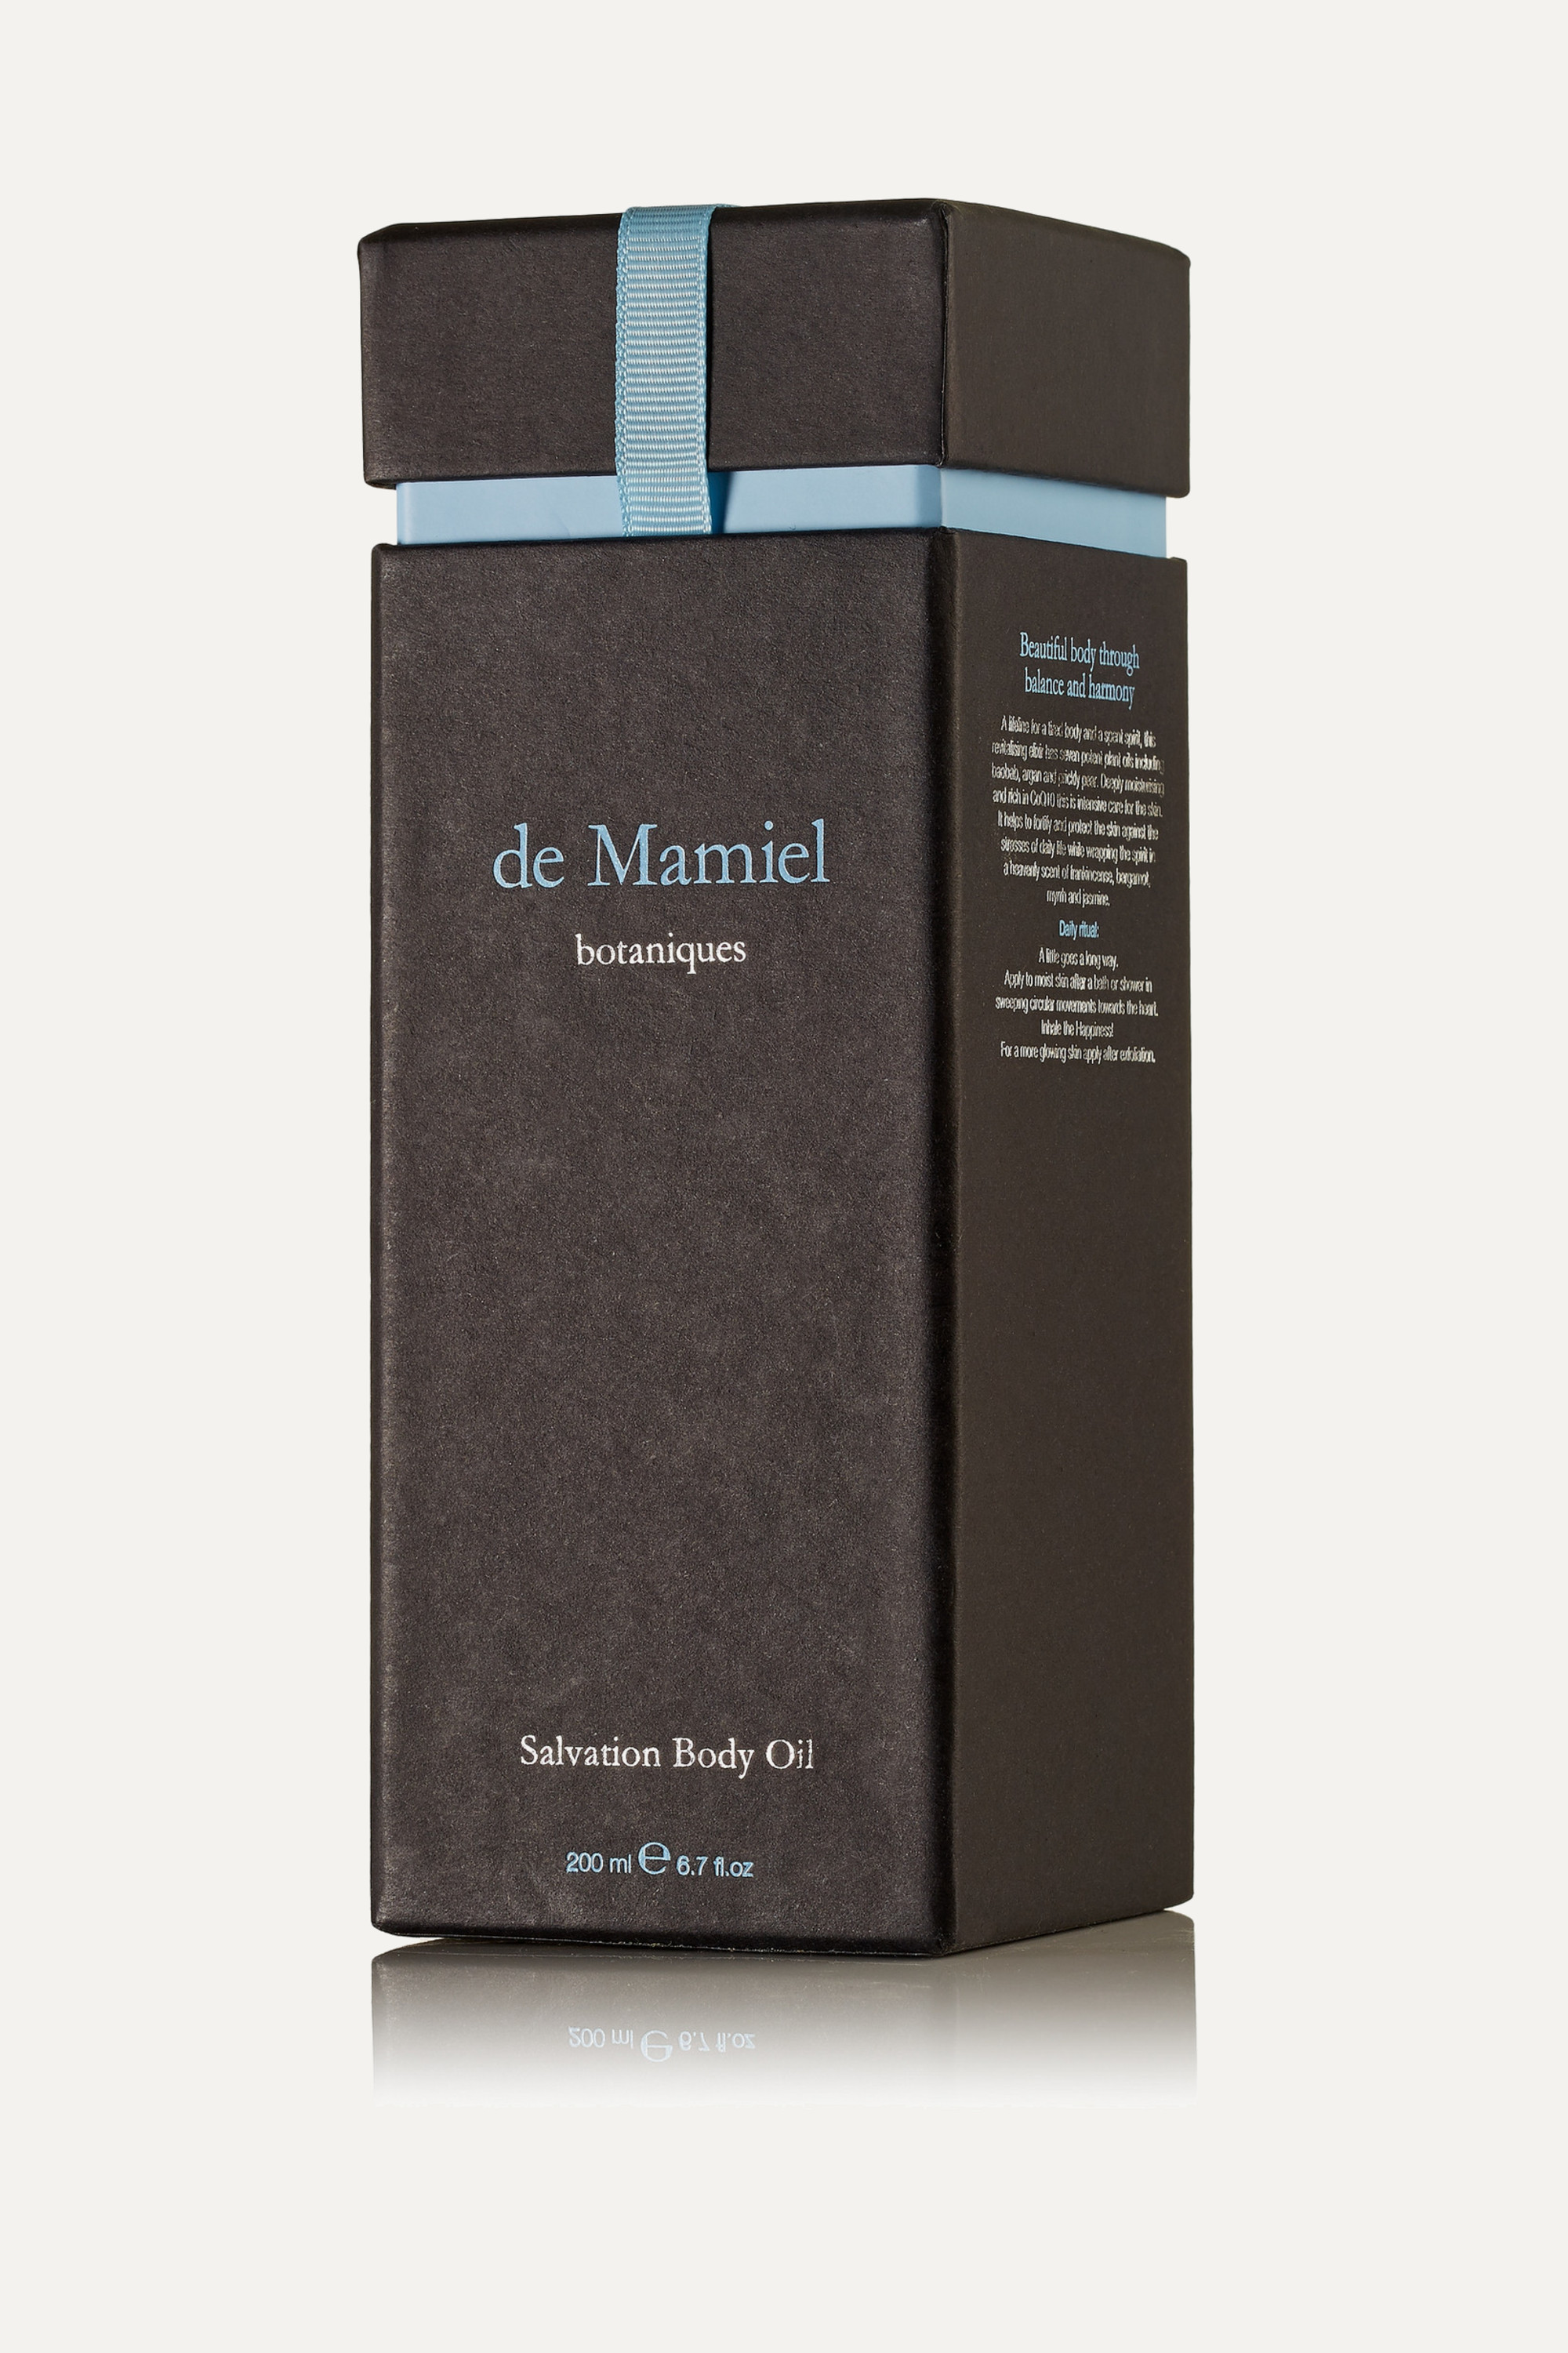 DE MAMIEL Salvation Body Oil, 200ml